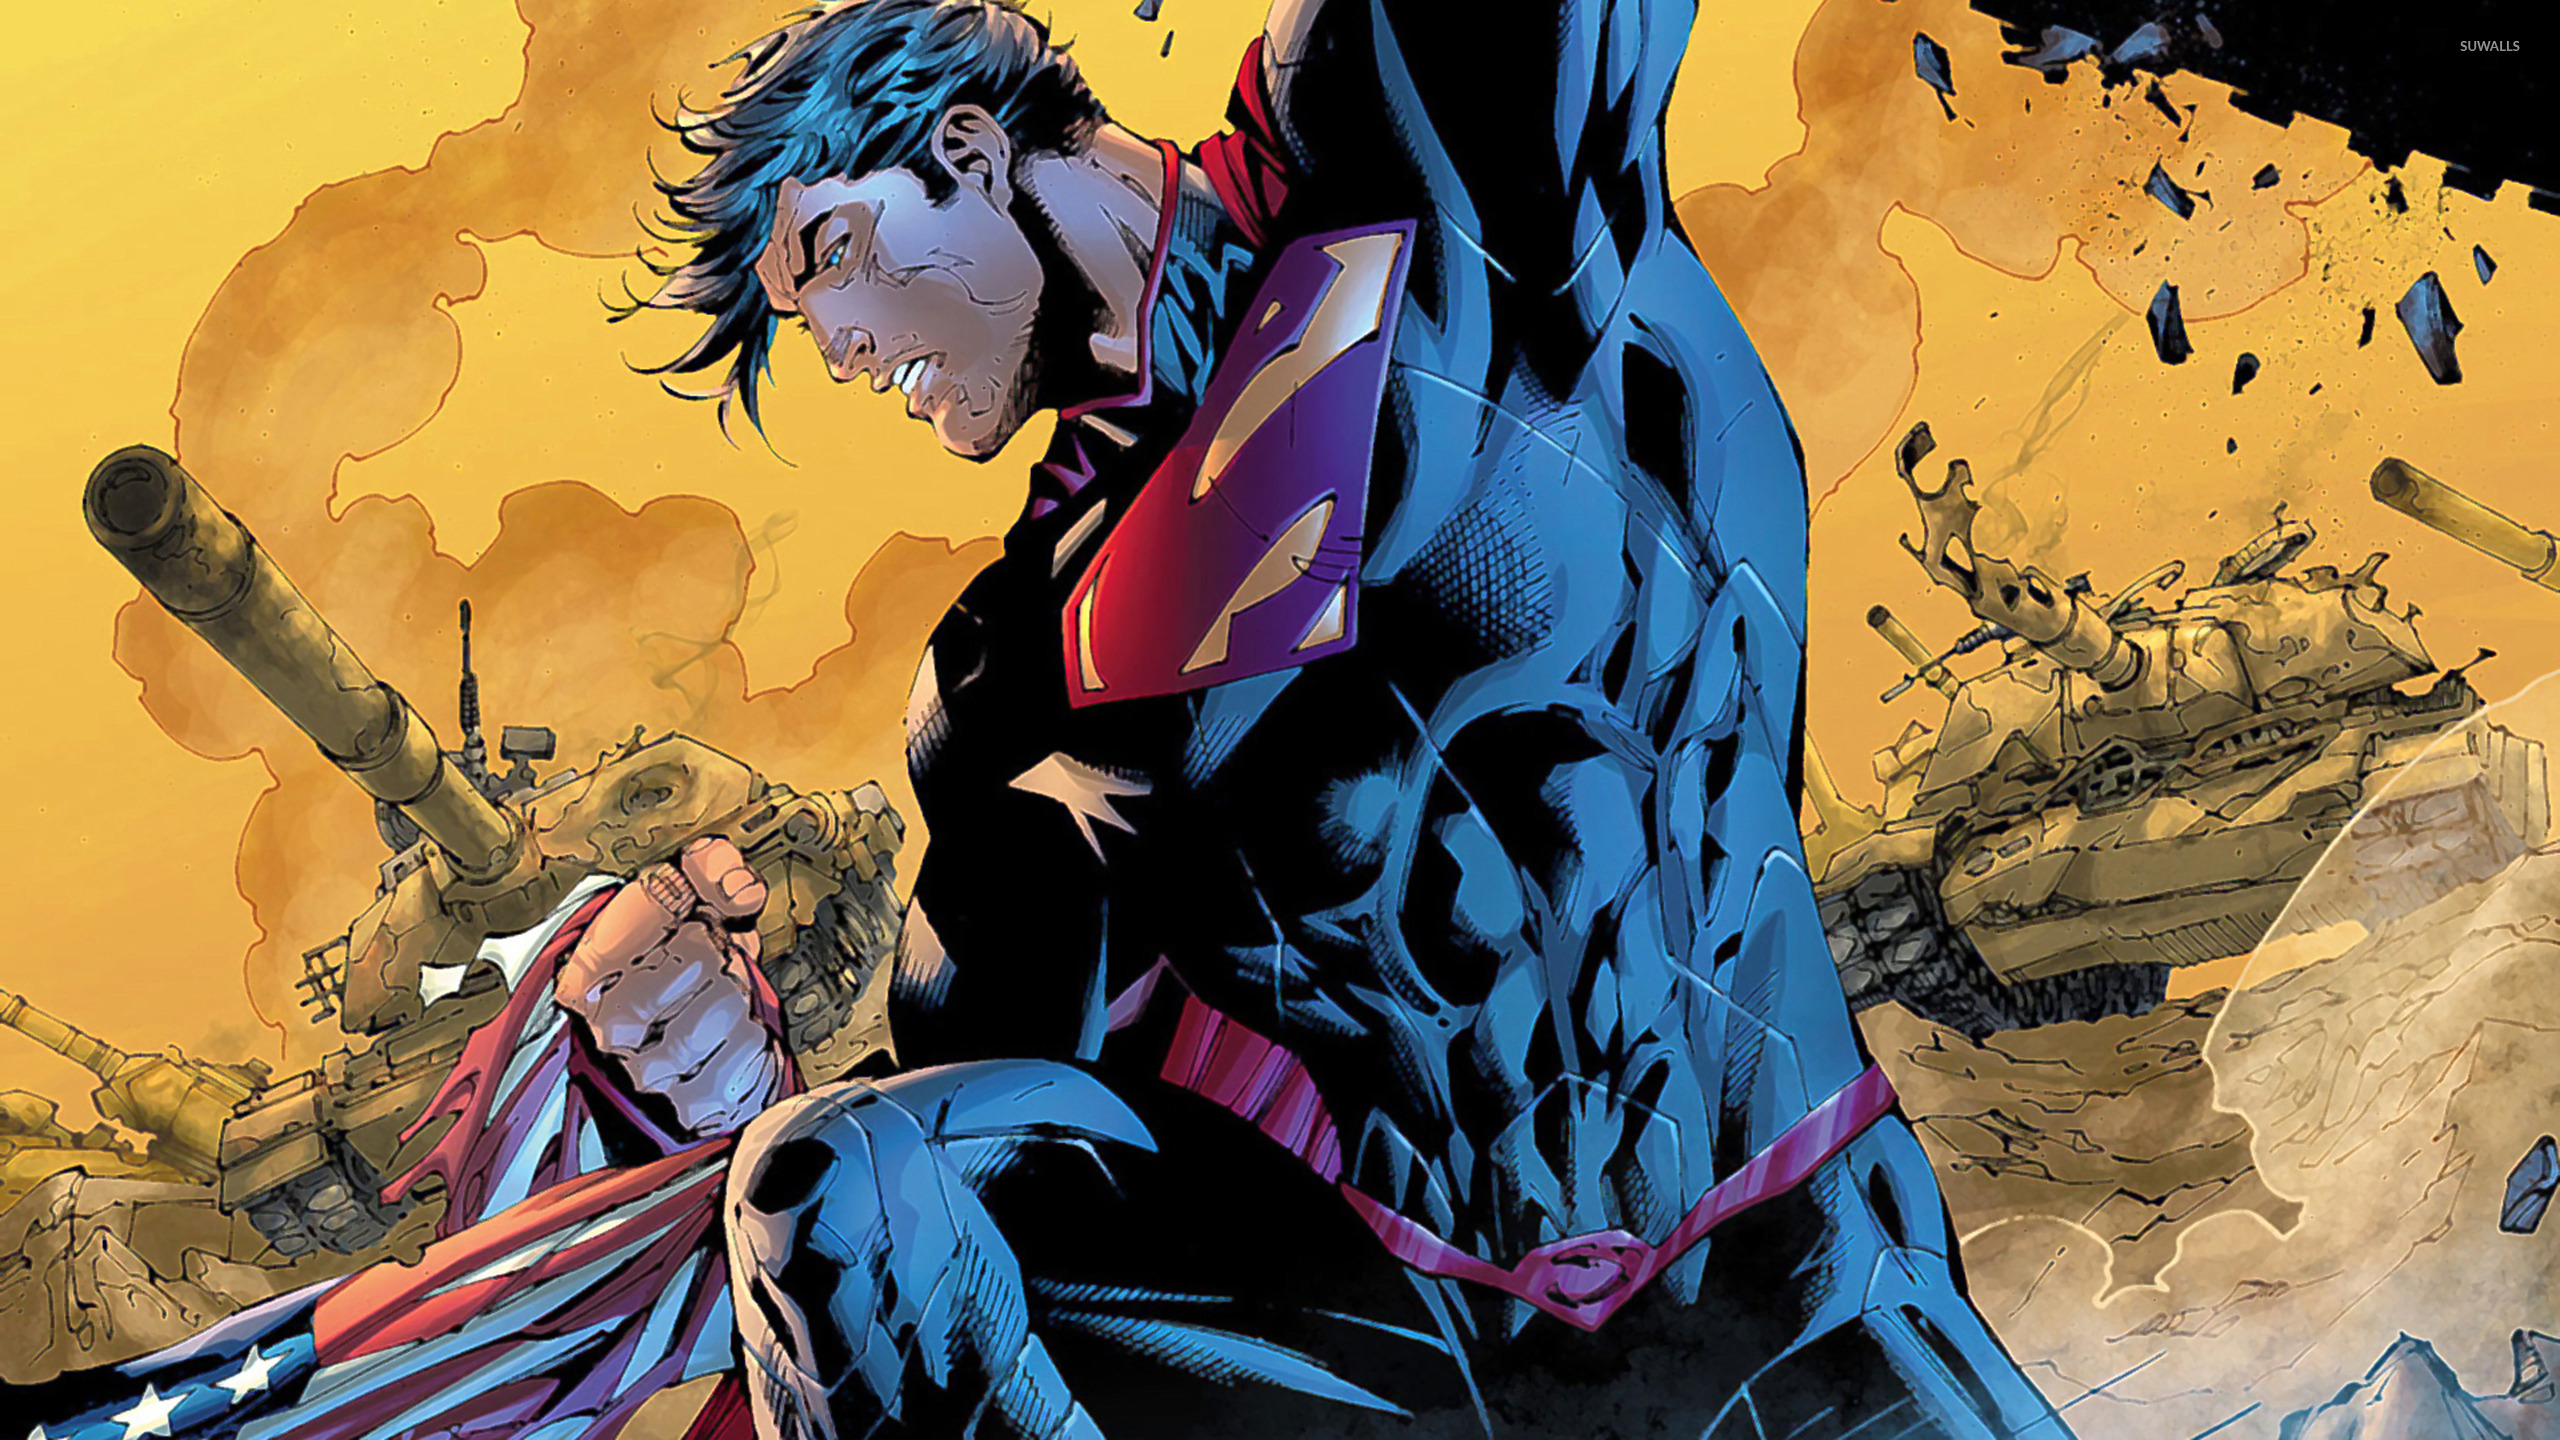 Superman Comic Wallpapers High Resolution - Wickedsa com